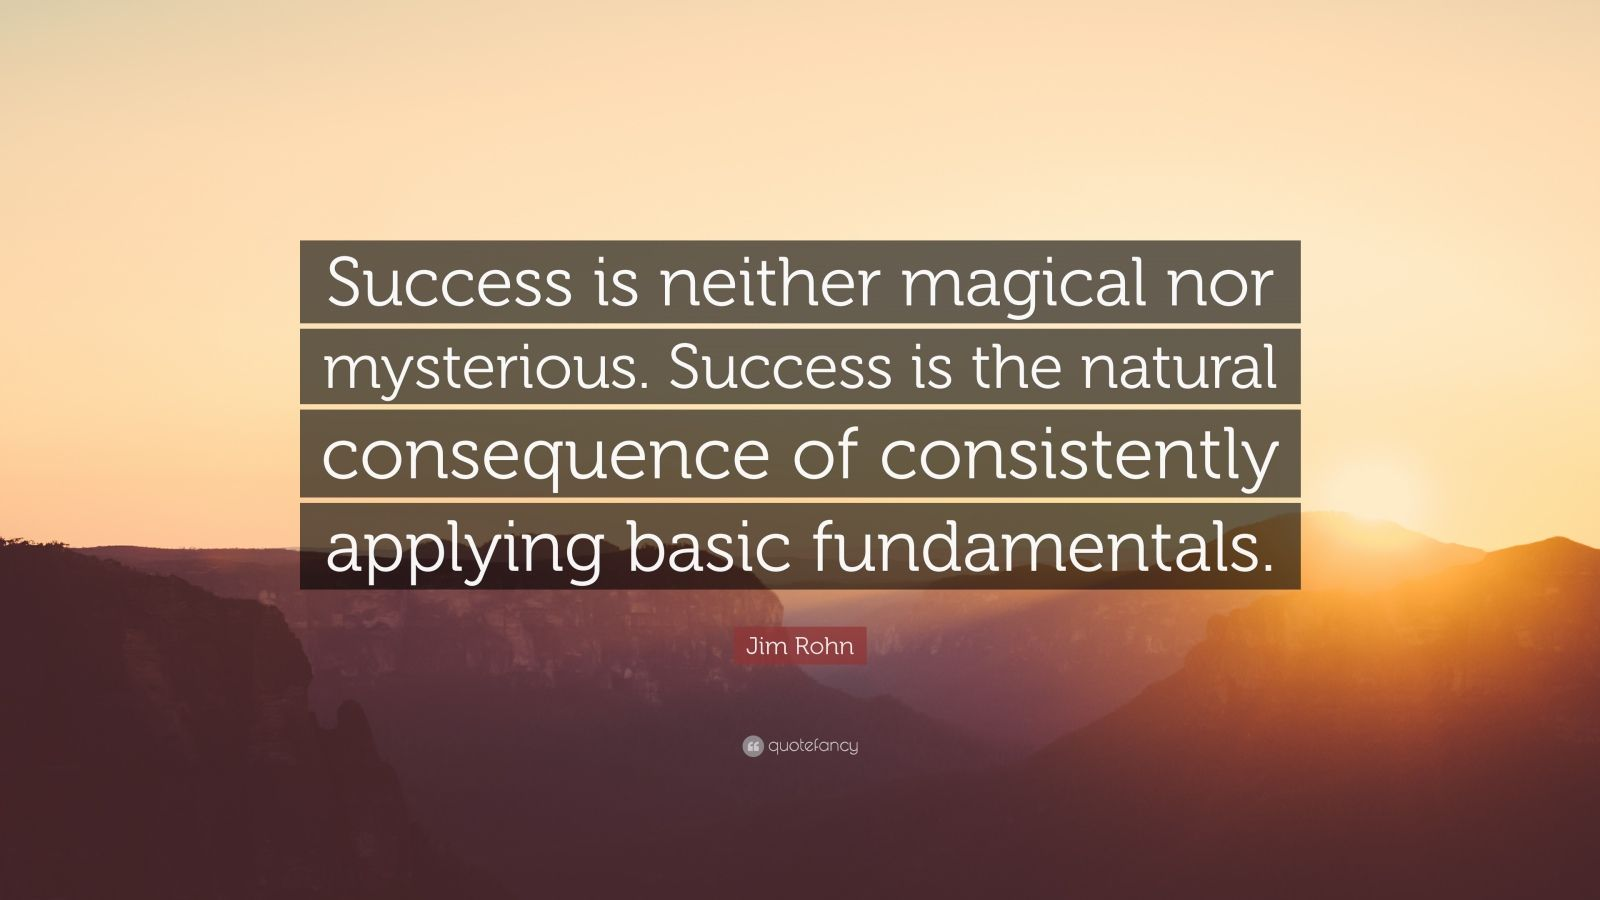 """Jim Rohn Quote: """"Success is neither magical nor mysterious. Success is the natural consequence of consistently applying basic fundamentals."""""""